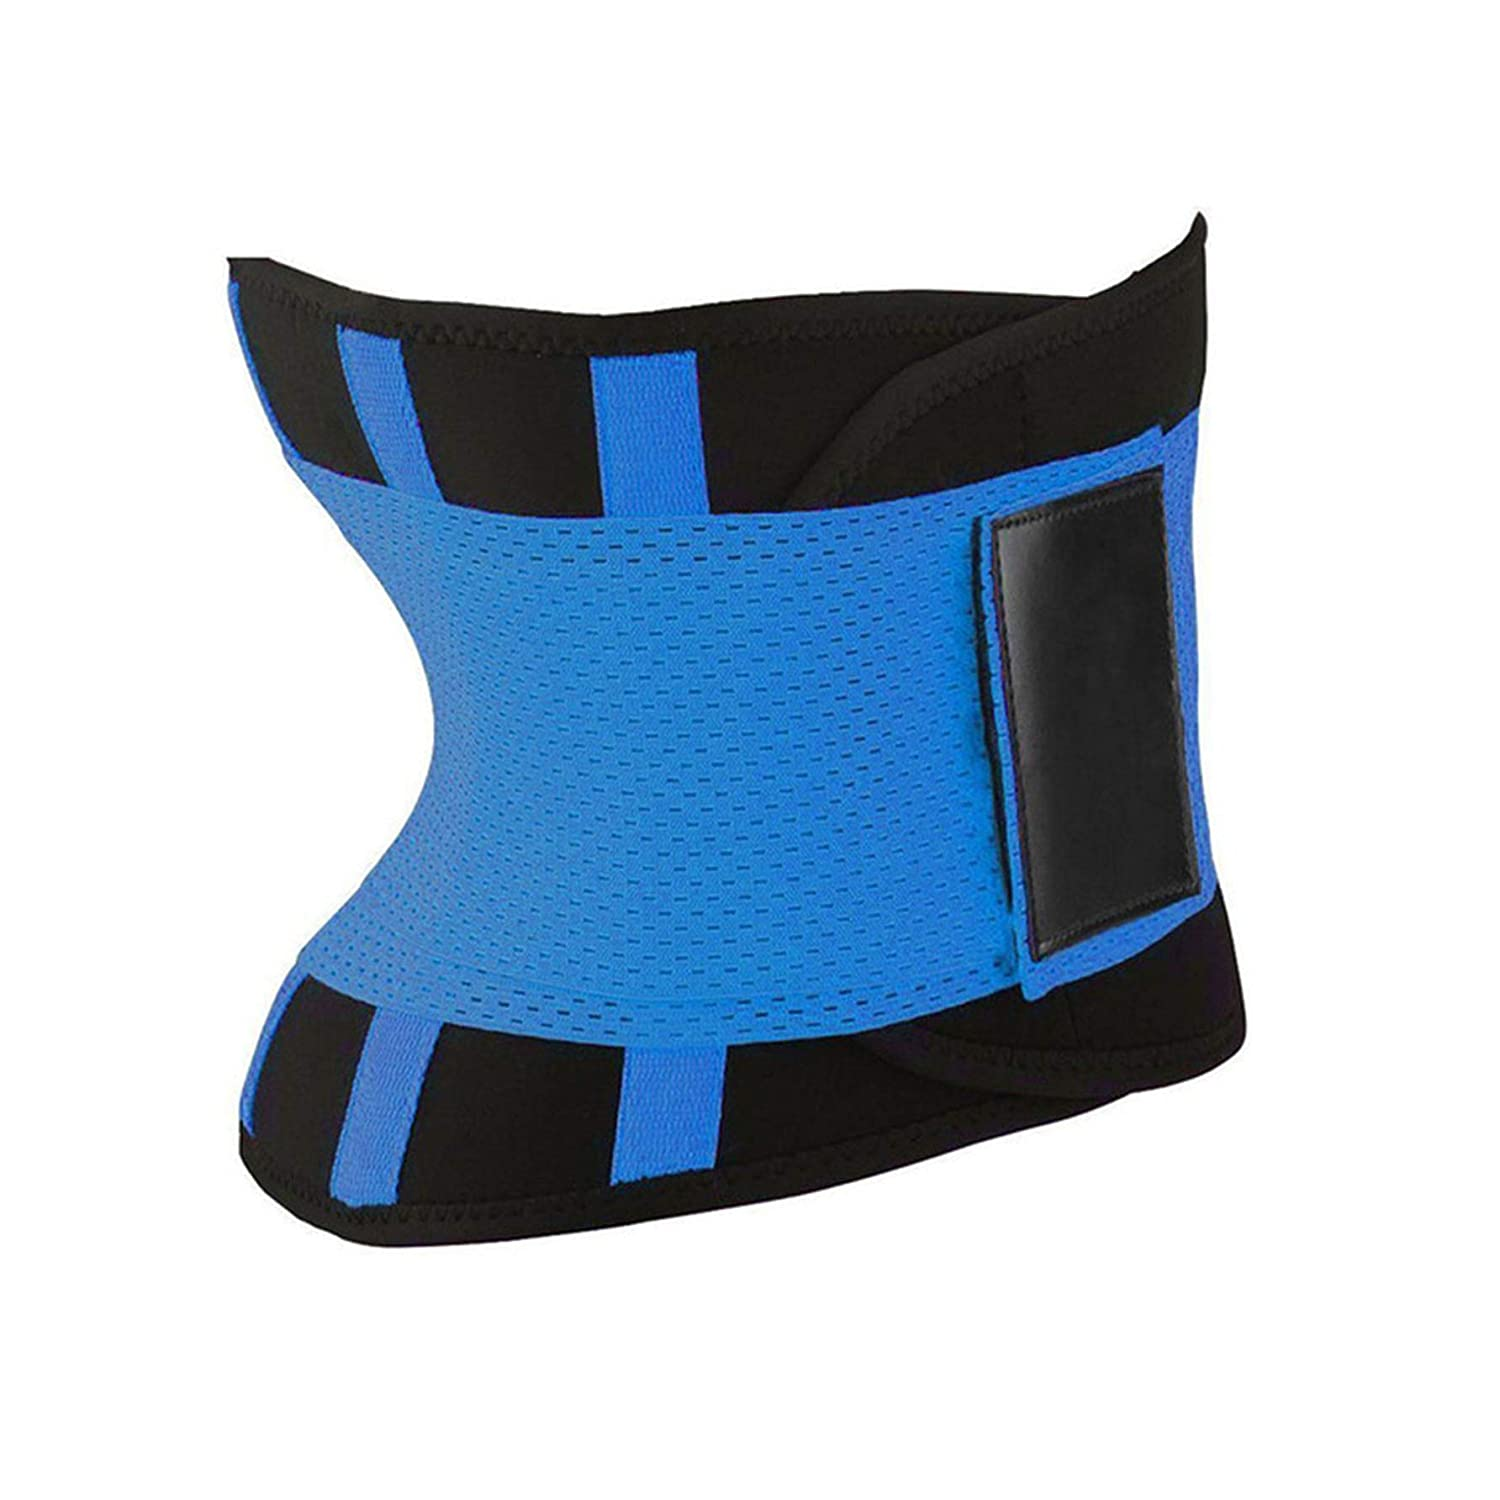 Fortune-God Women Shaper Waist Trainer-Slimming Belt Exercise Fitness Shapewear Control Burn Fat Cincher,Blue,M